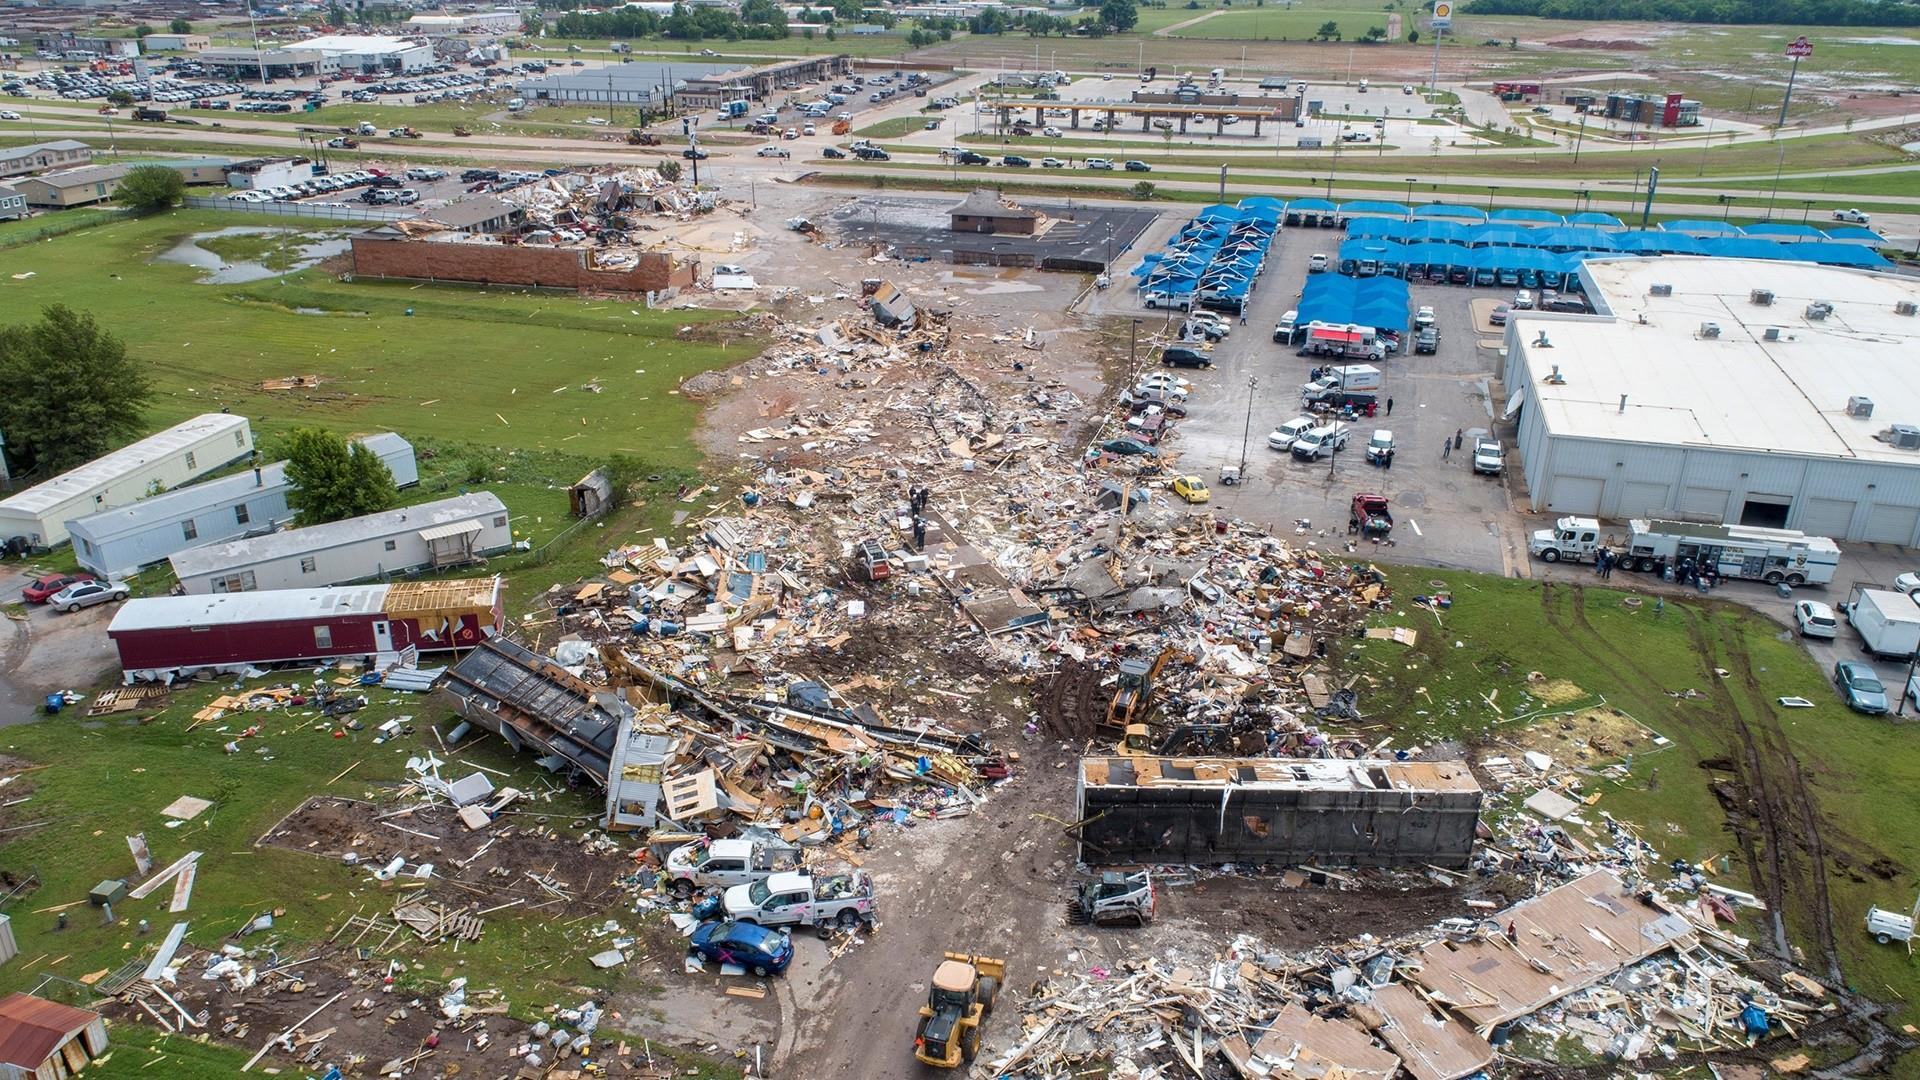 Search and rescue underway after deadly tornado hits Oklahoma